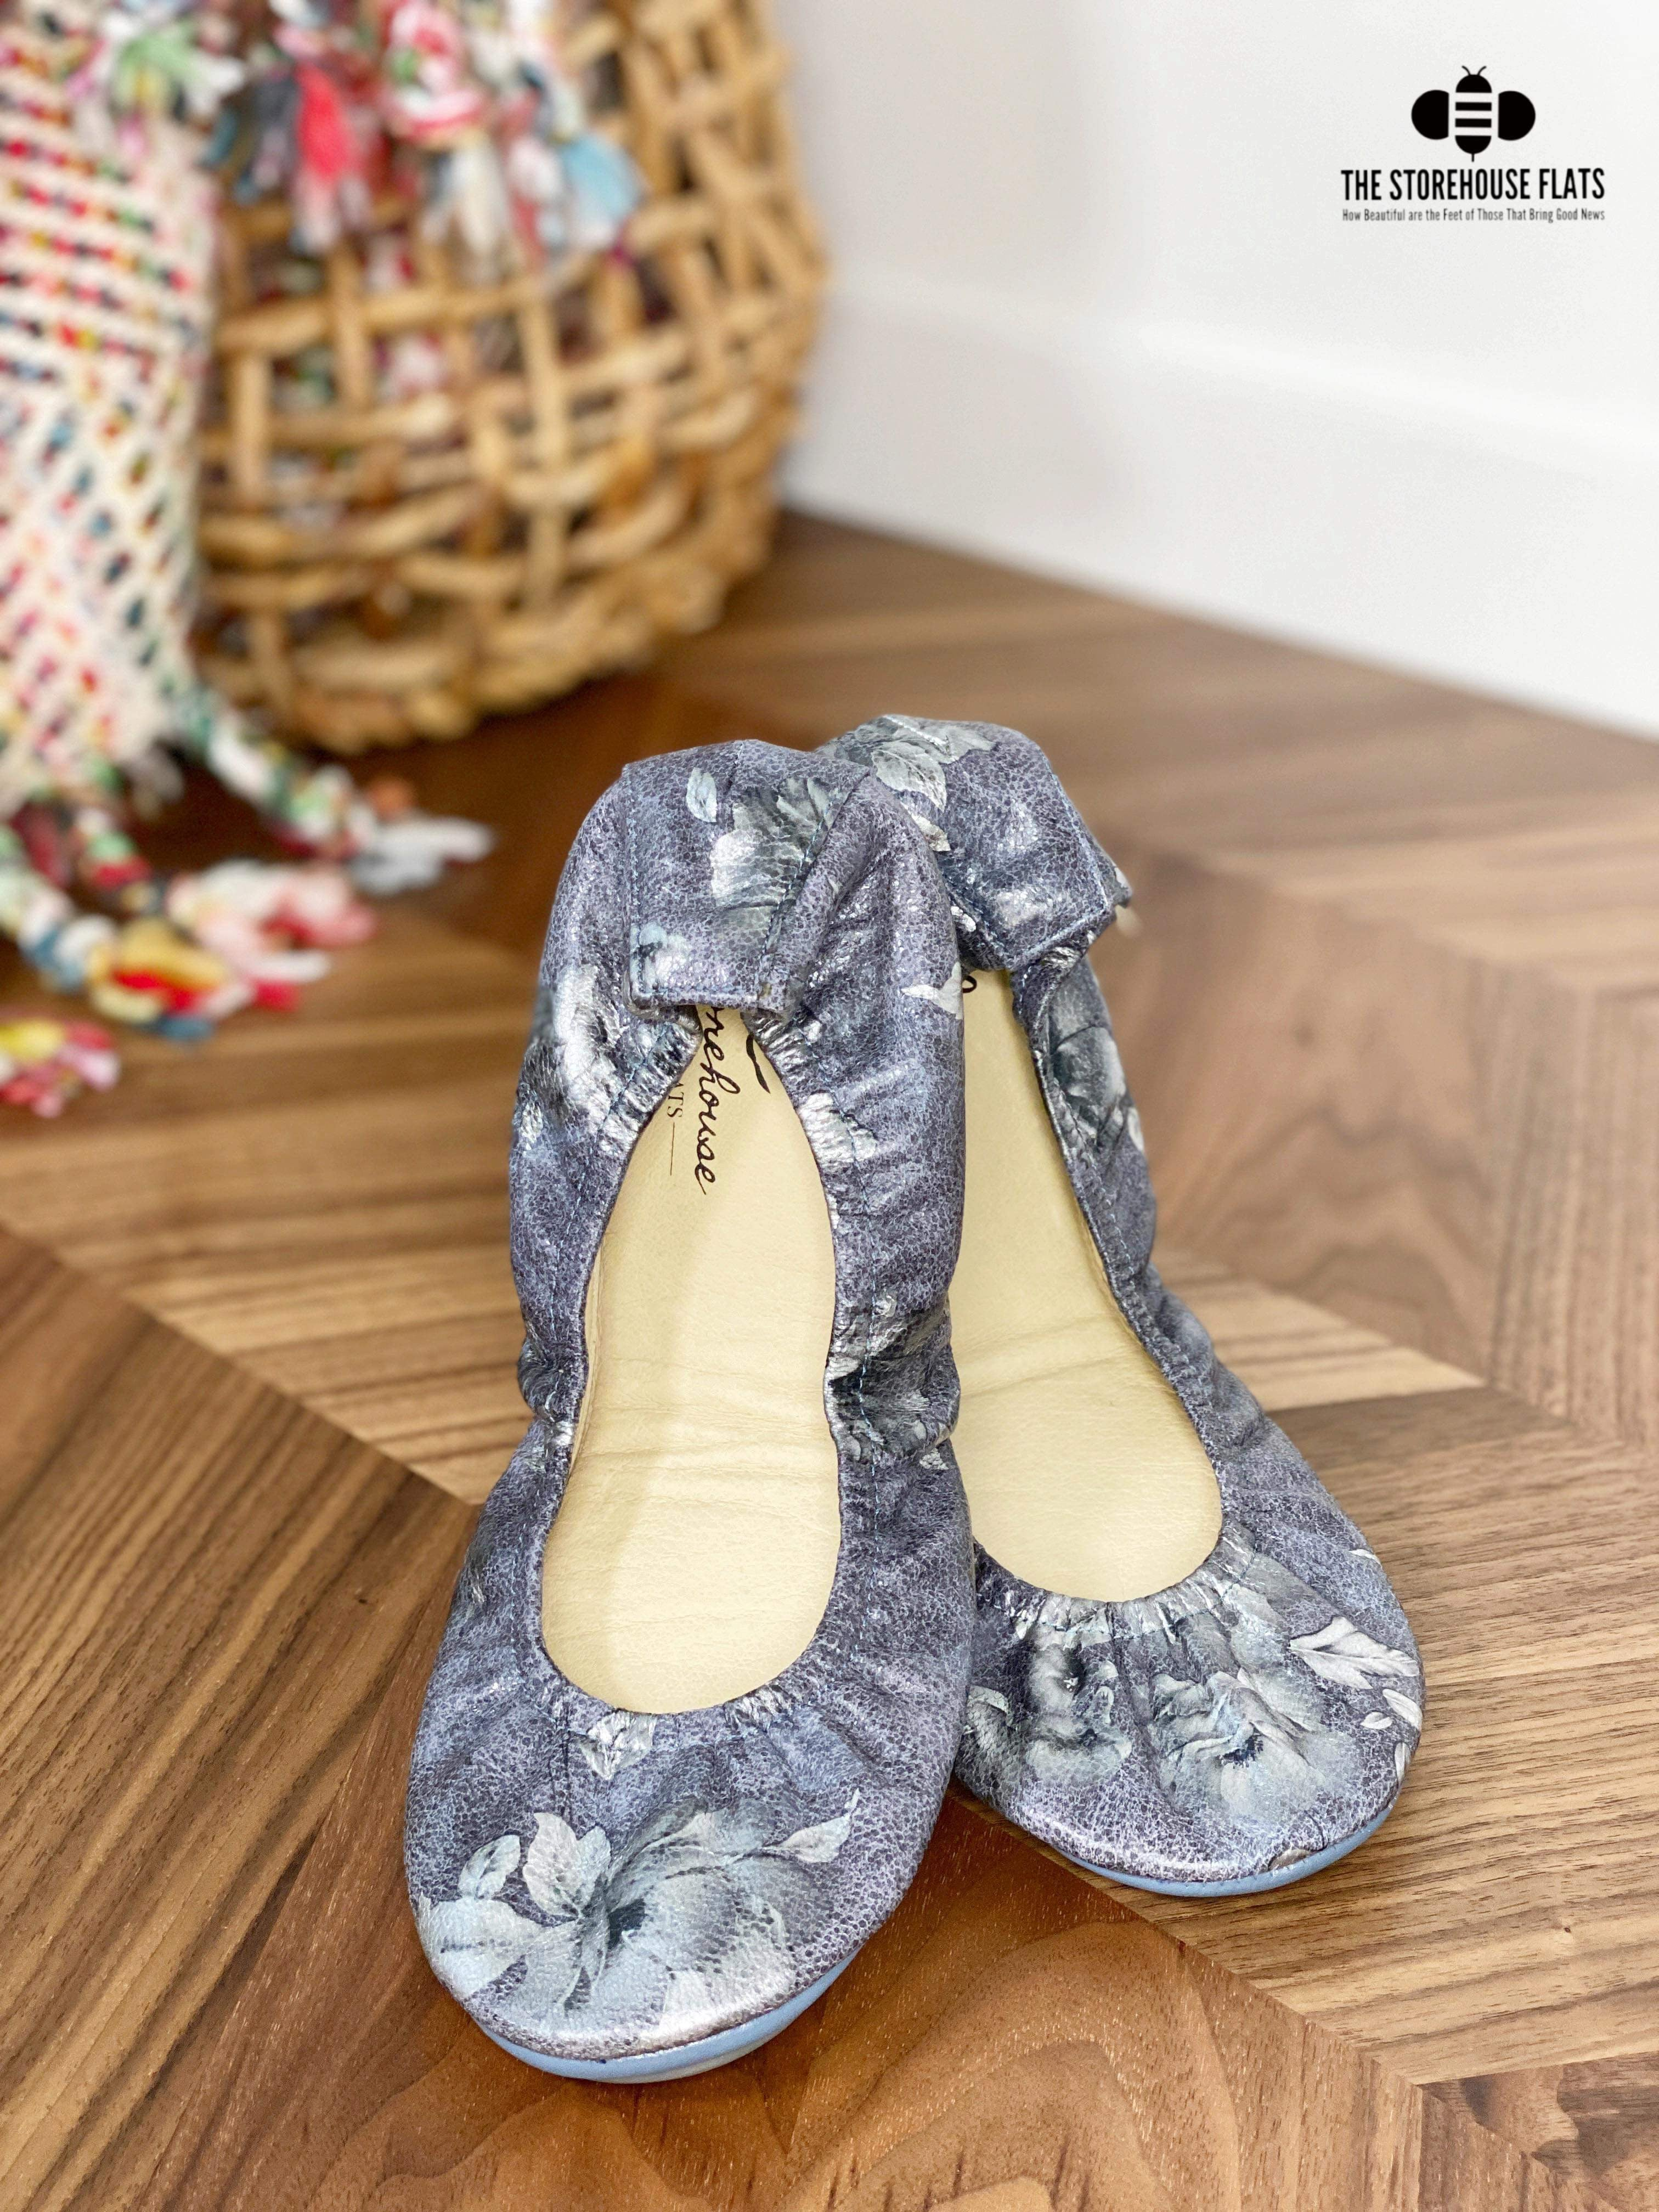 ANTIQUE FLORAL | IN STOCK - The Storehouse Flats